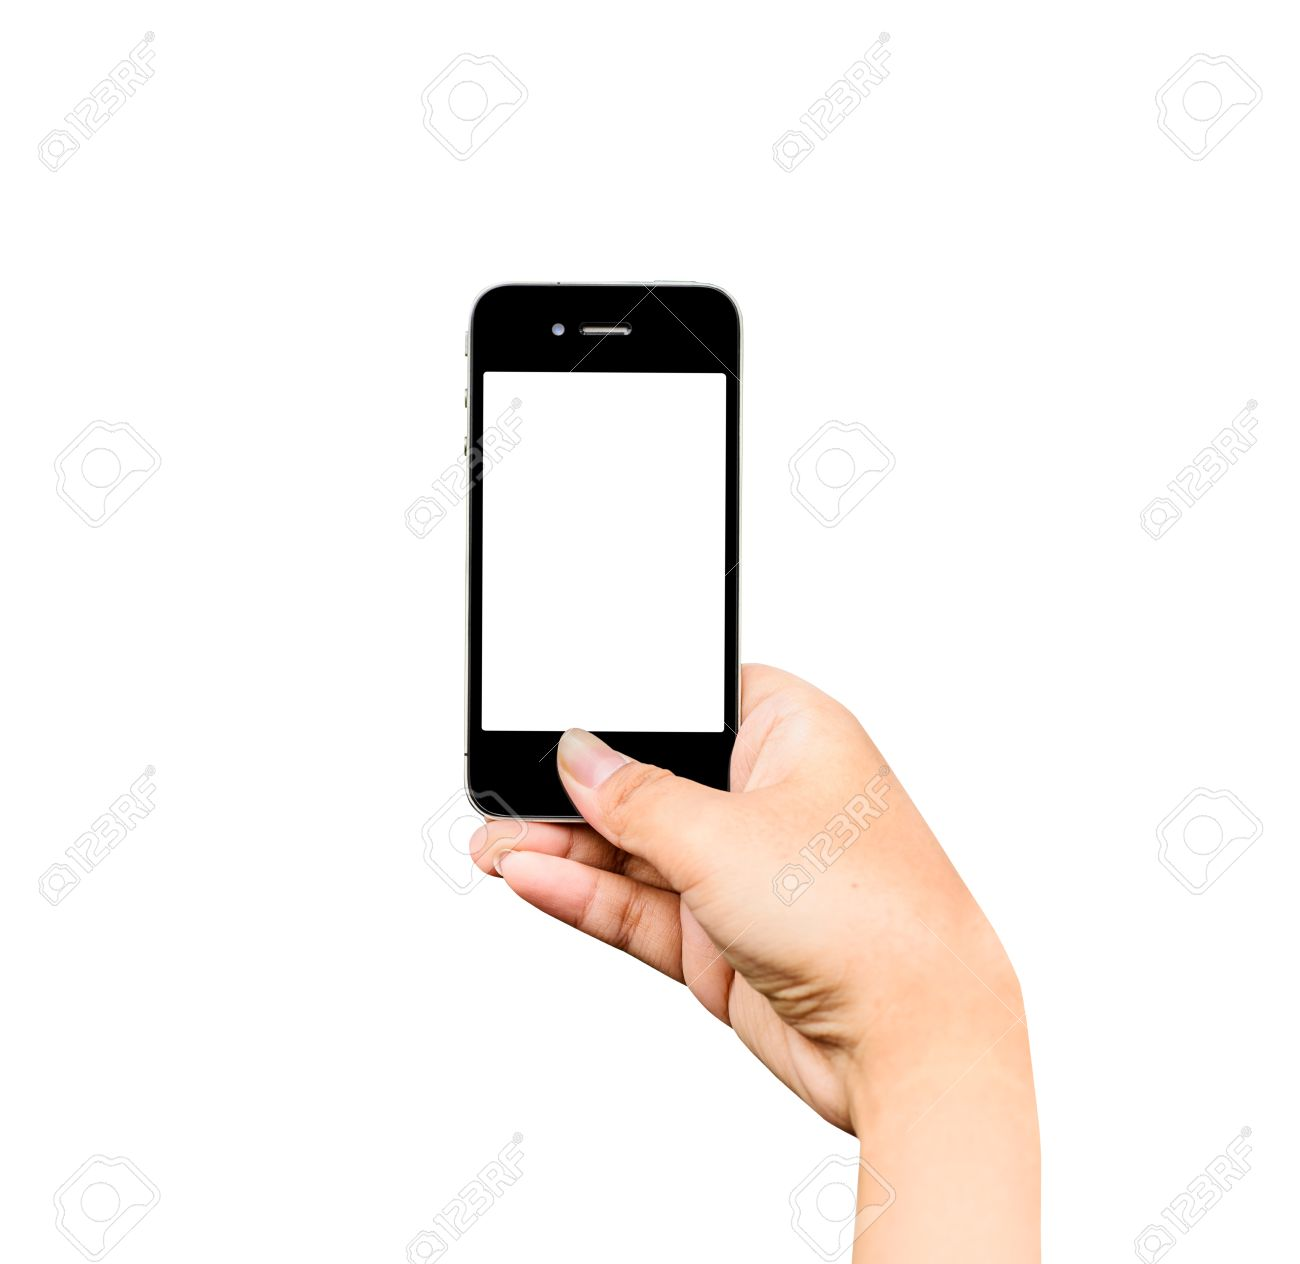 Taking photo with mobile phone on white background, Hand holding mobile smart phone with blank screen. Stock Photo - 41508414